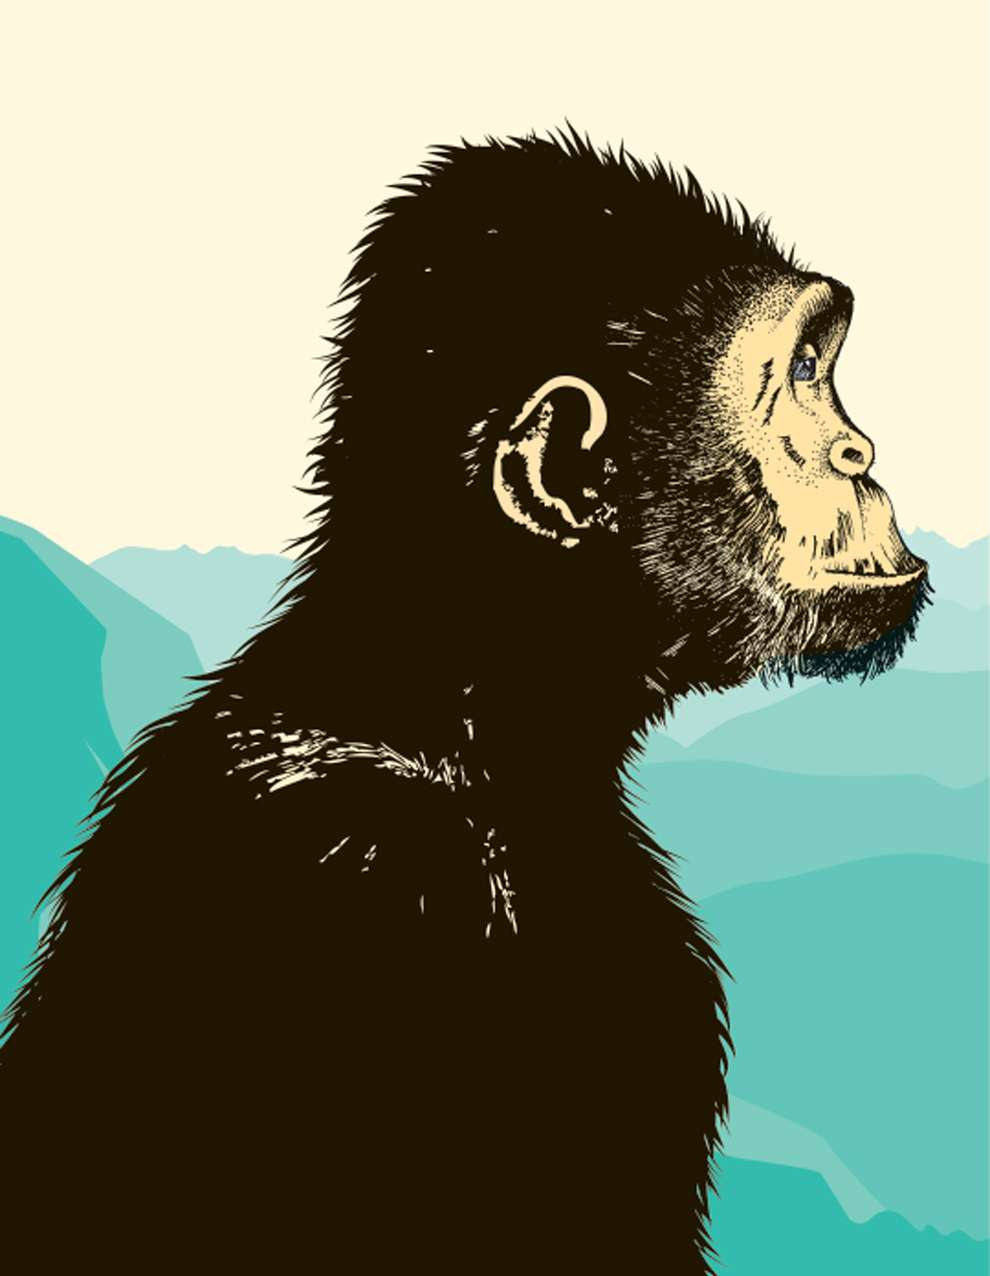 Valentina  D'Efilippo, Digital illustration of a monkey